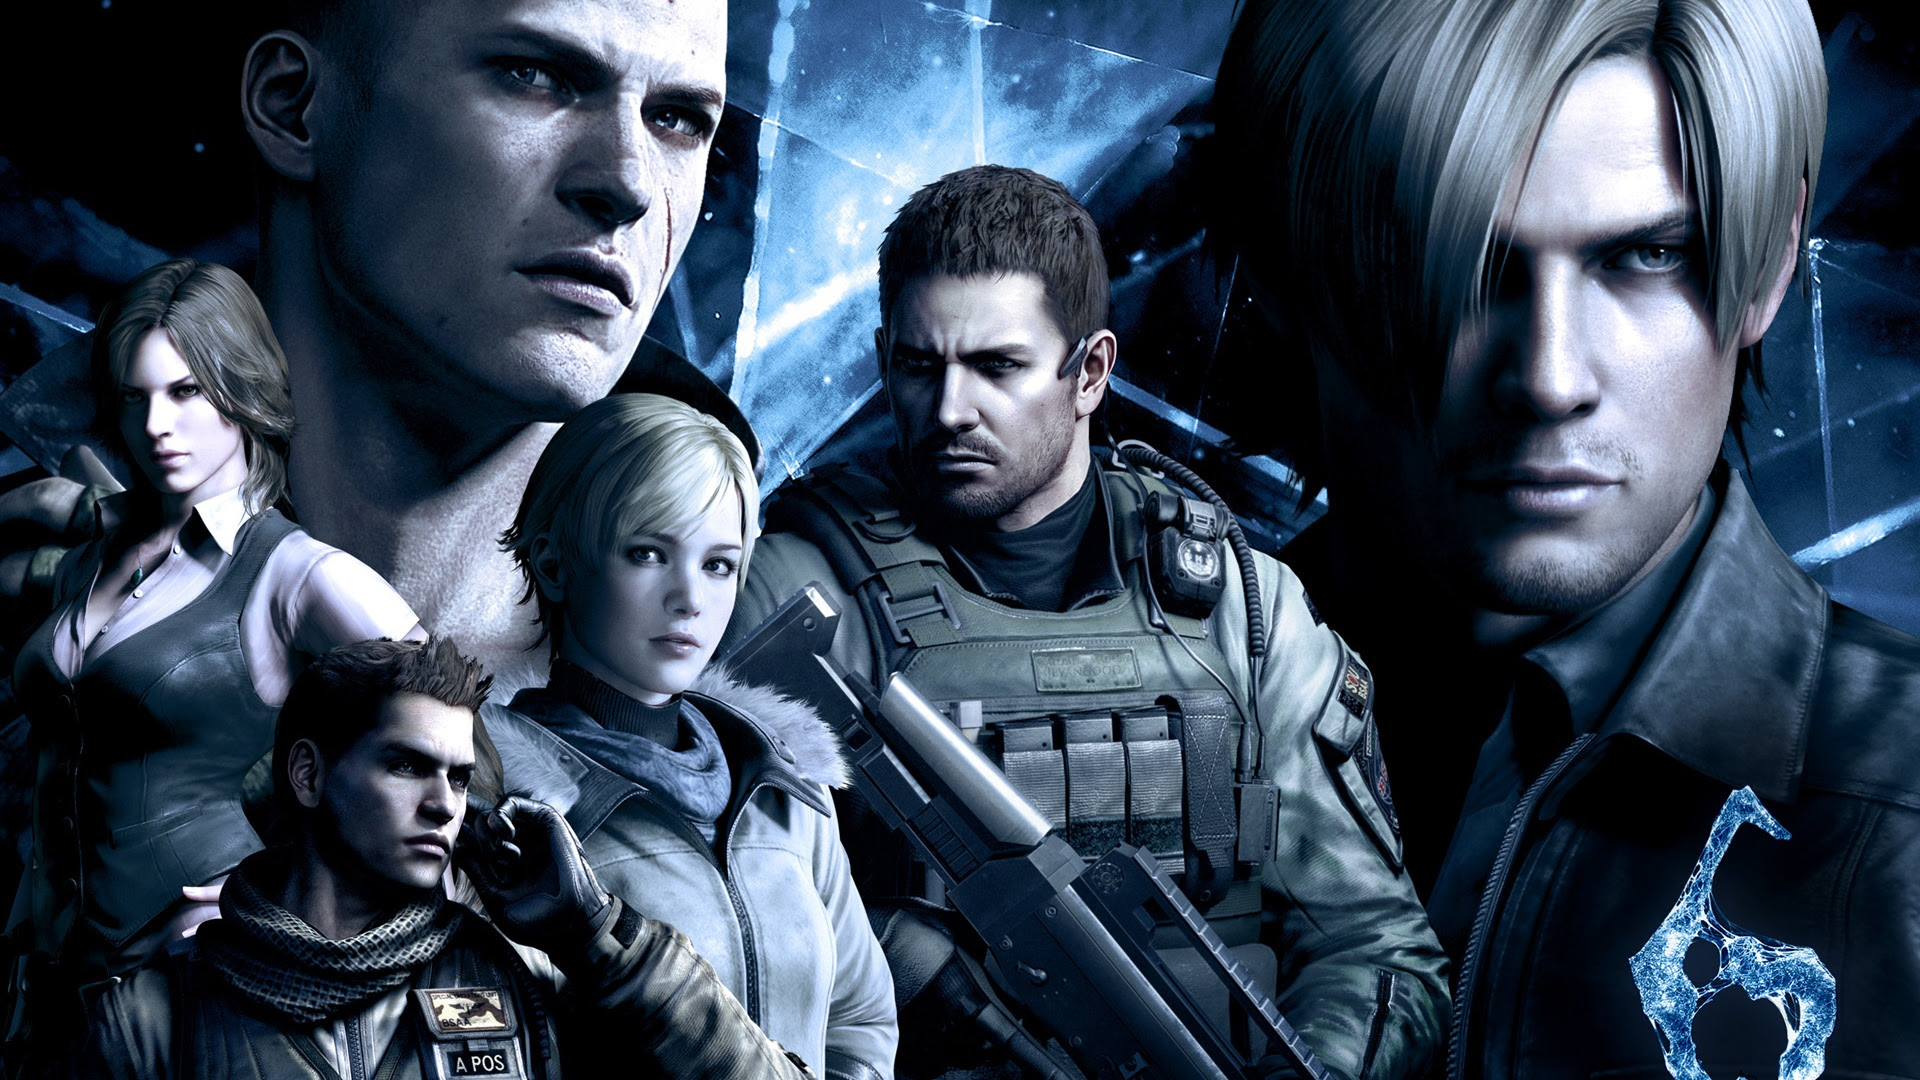 Resident Evil 6 Hd Game Wallpapers 9 1920x1080 Wallpaper